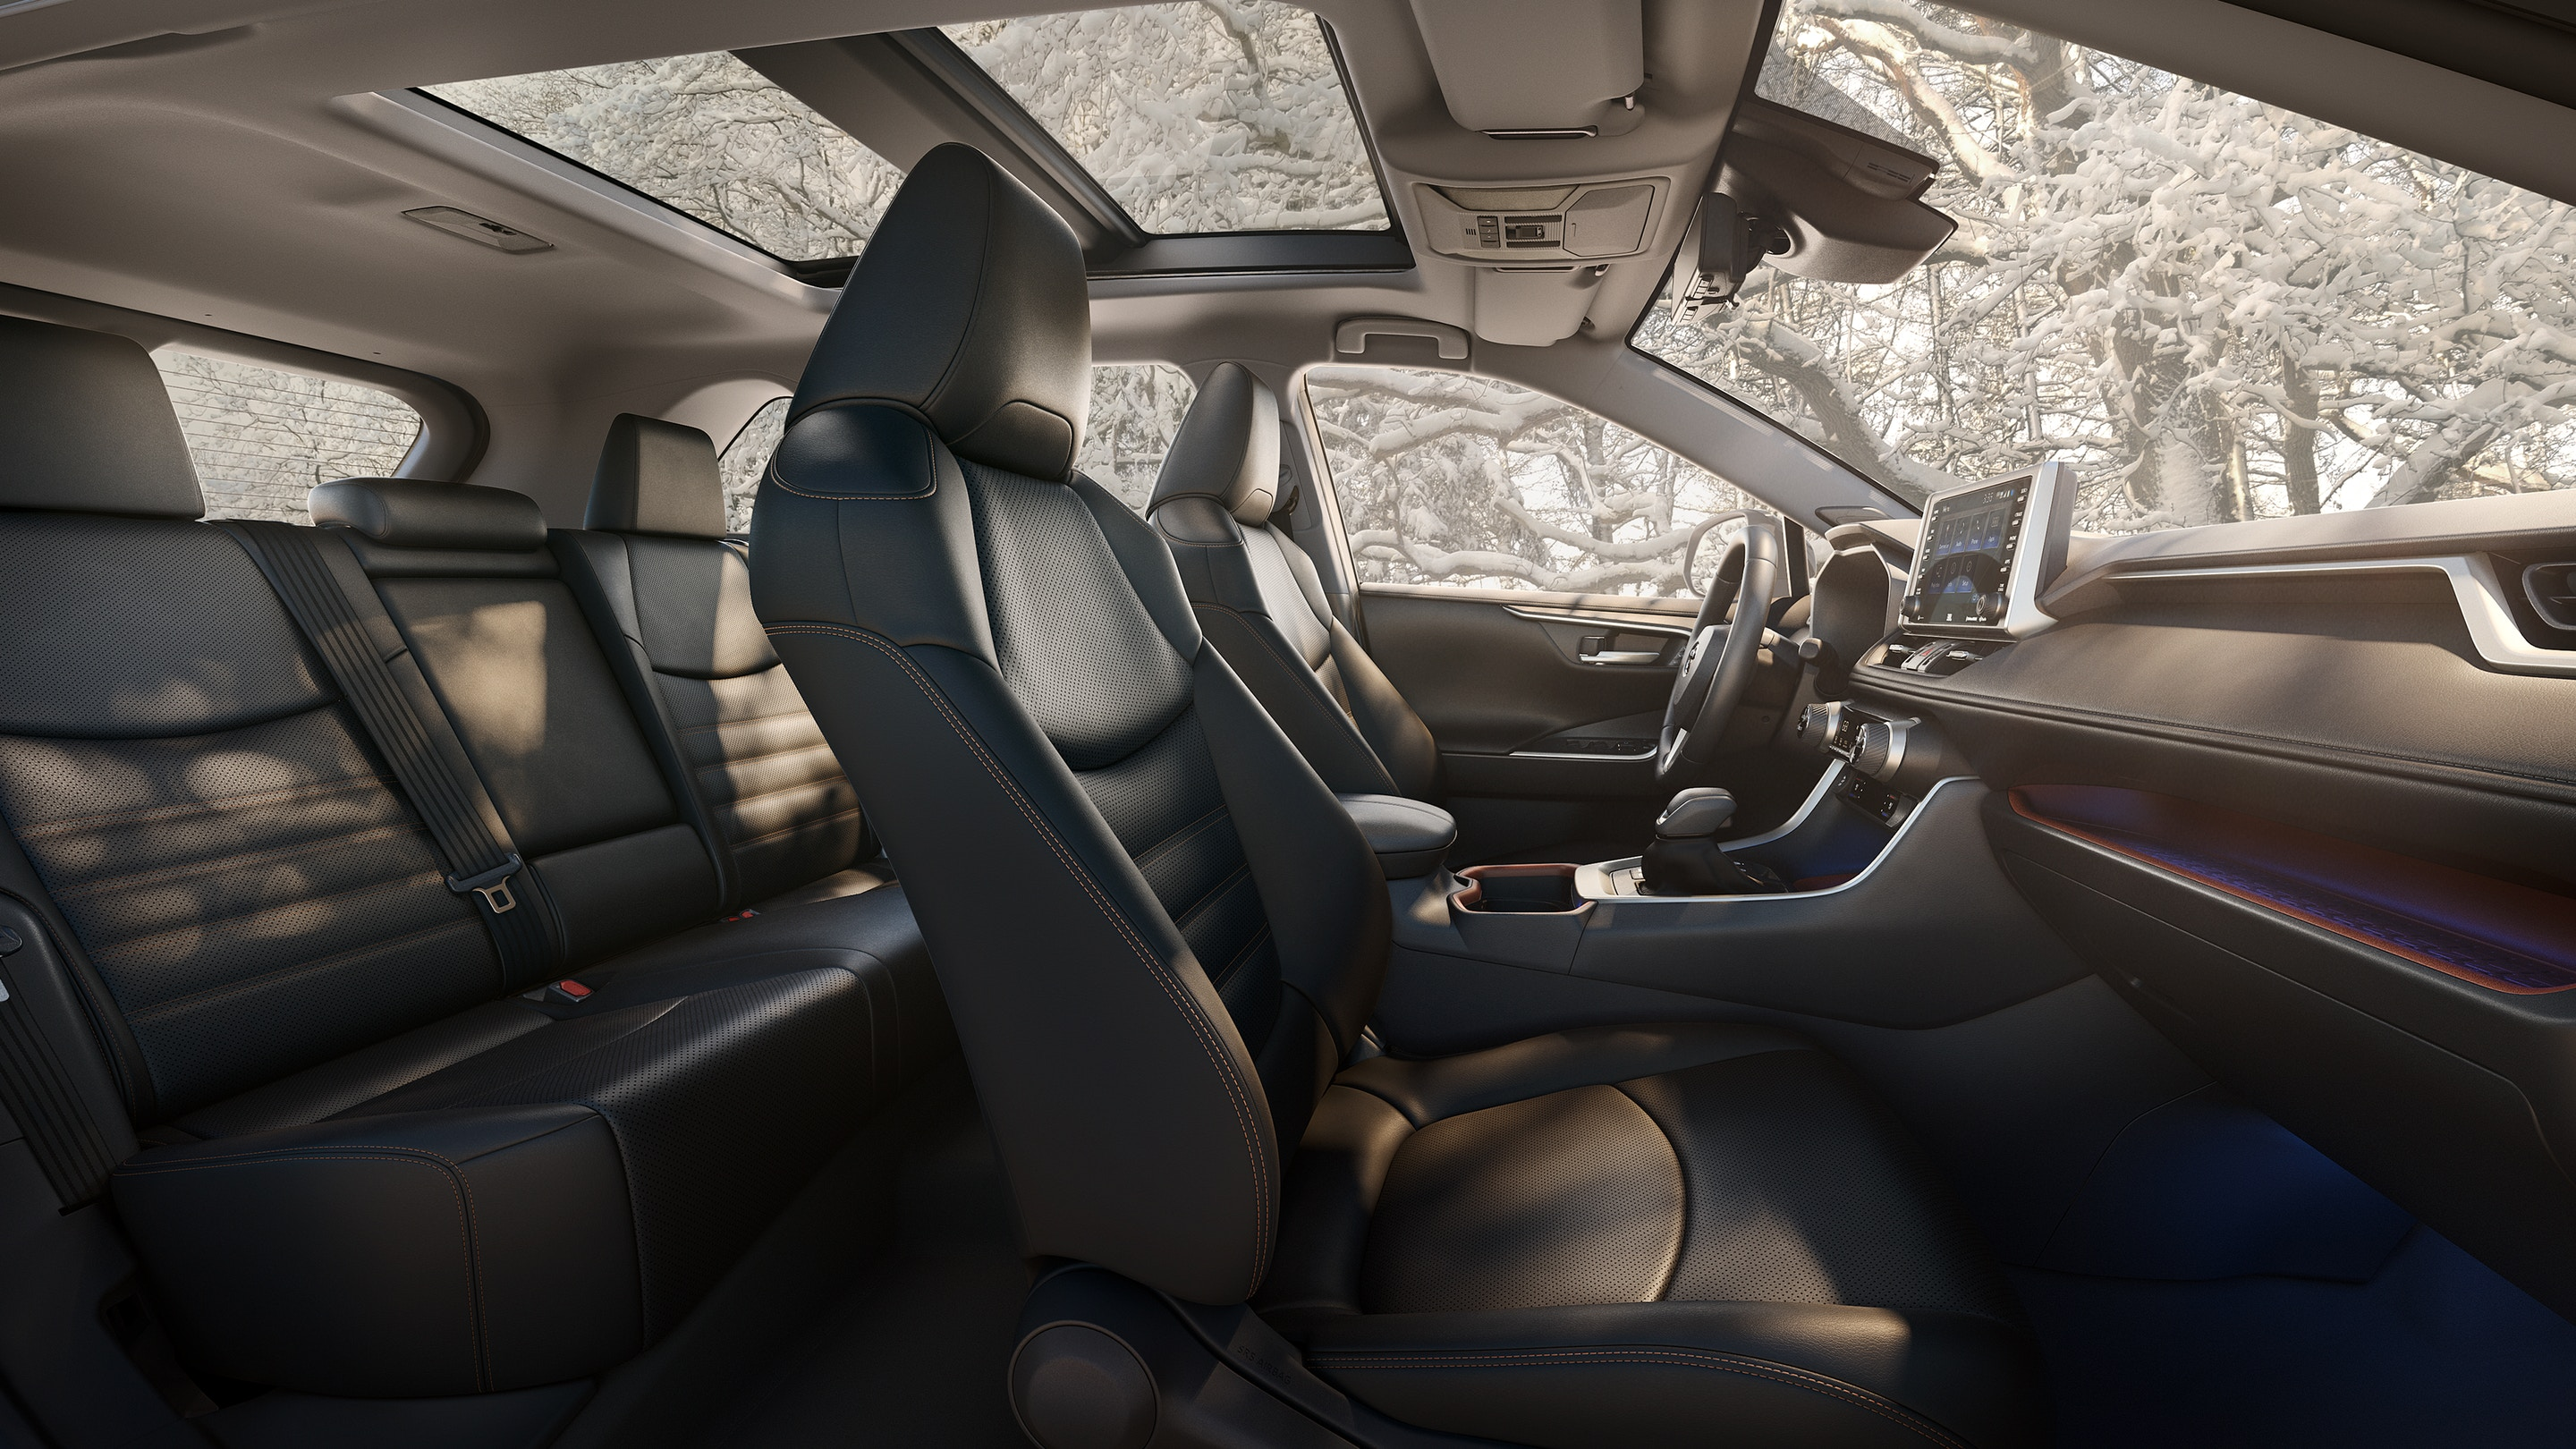 2019 Toyota RAV4 Seating